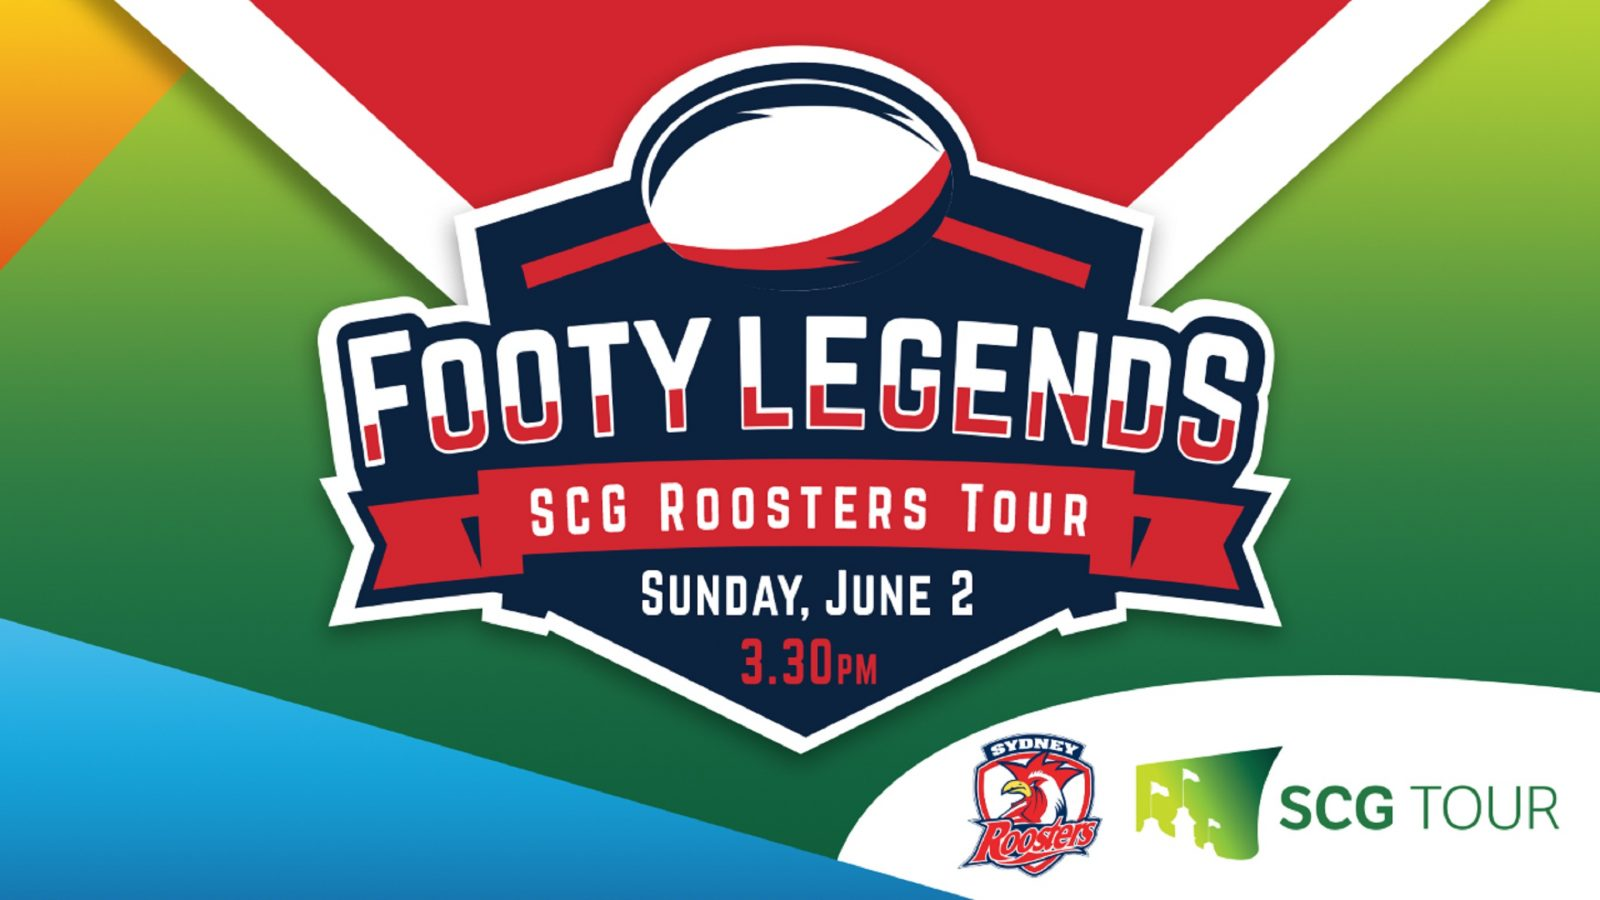 Sydney Roosters Footy Legends Tour